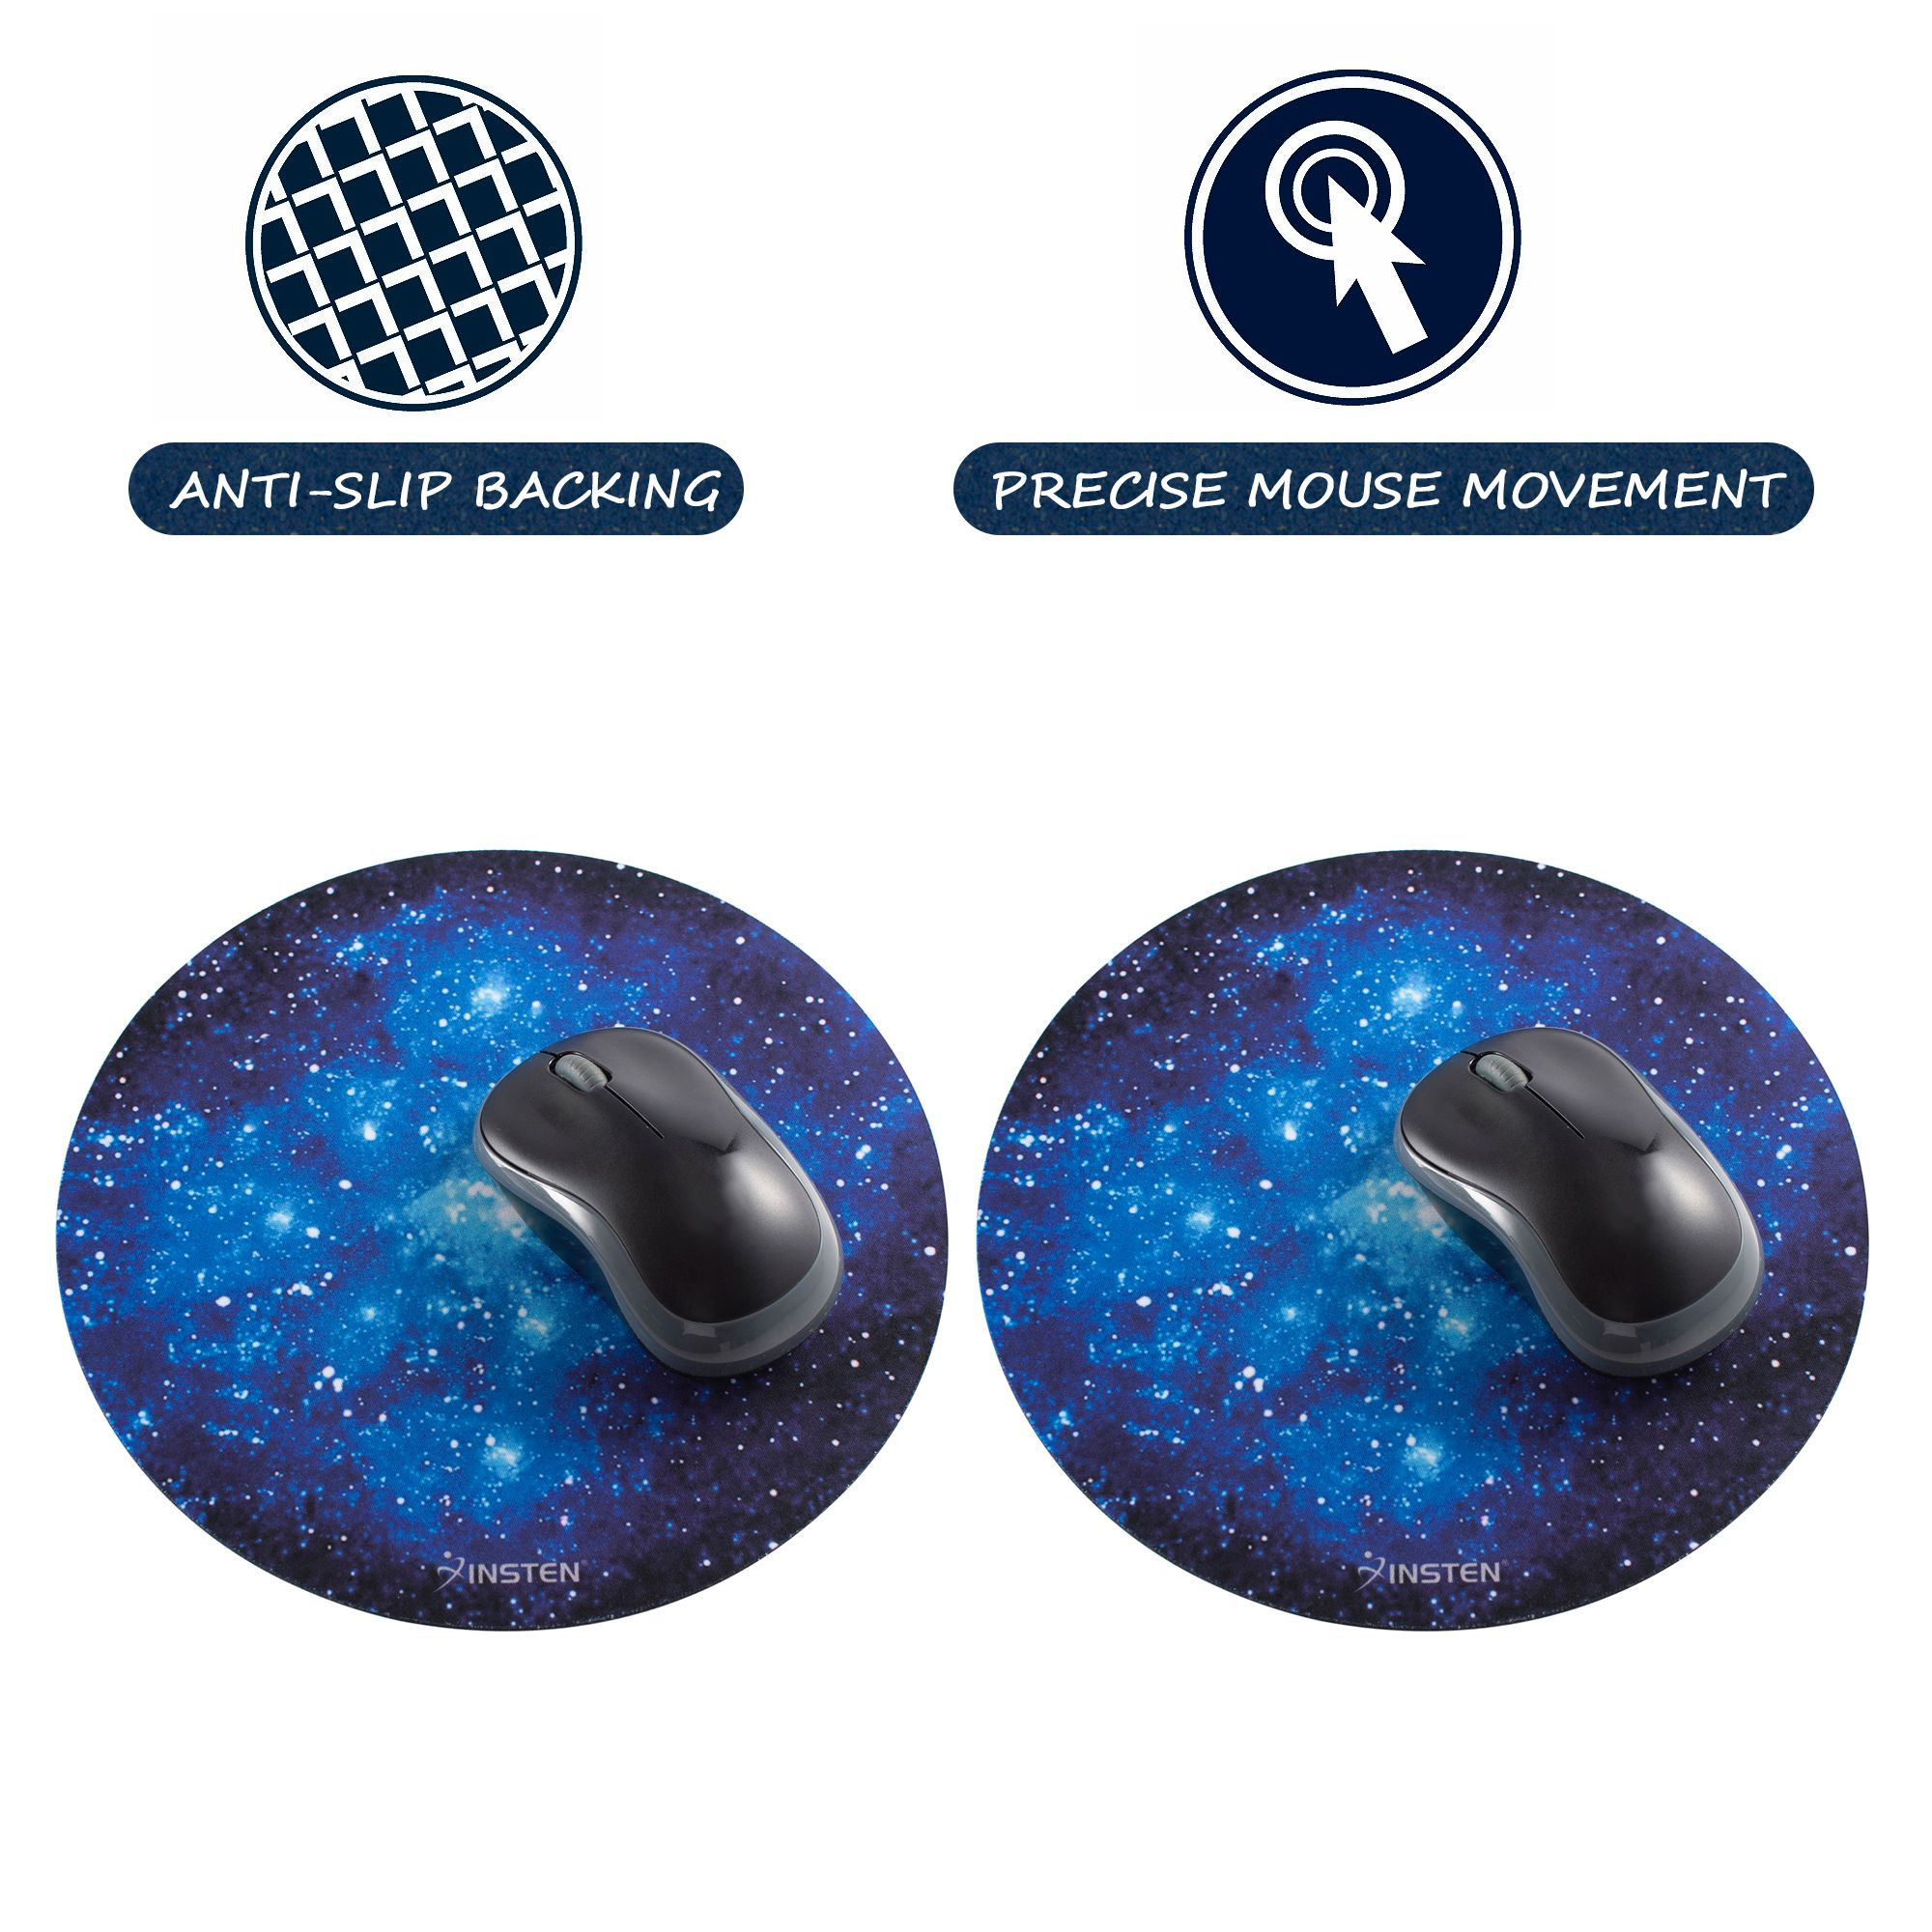 """Mouse pad by Insten 2-pack Galactic Space Design Round Galaxy Mouse Mat Pad Anti-Slip Backing Silky Smooth Surface 2mm Ultra Thick Diameter: 8.46"""" For Laptop PC Gaming Home Office - Blue Starry Night"""